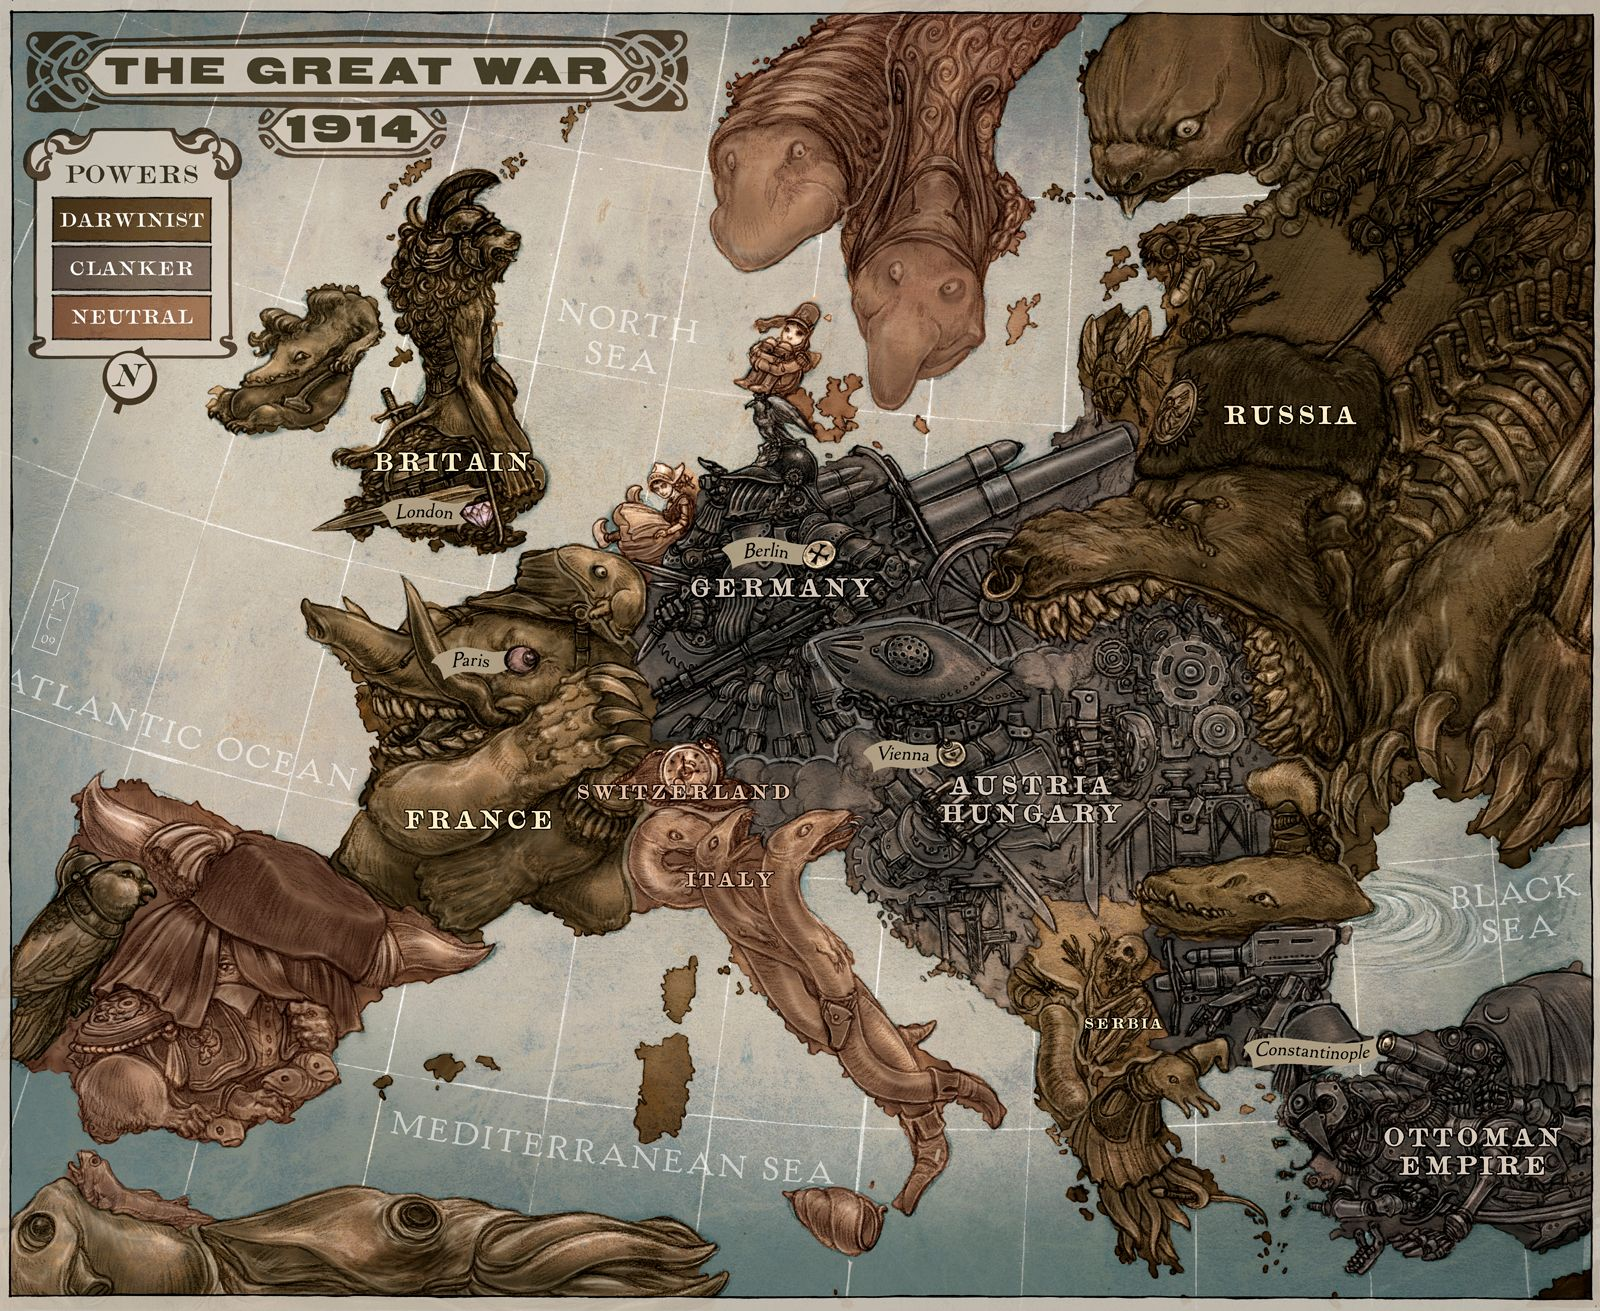 A steampunk themed map of Europe in 1914 showing the major participating countries